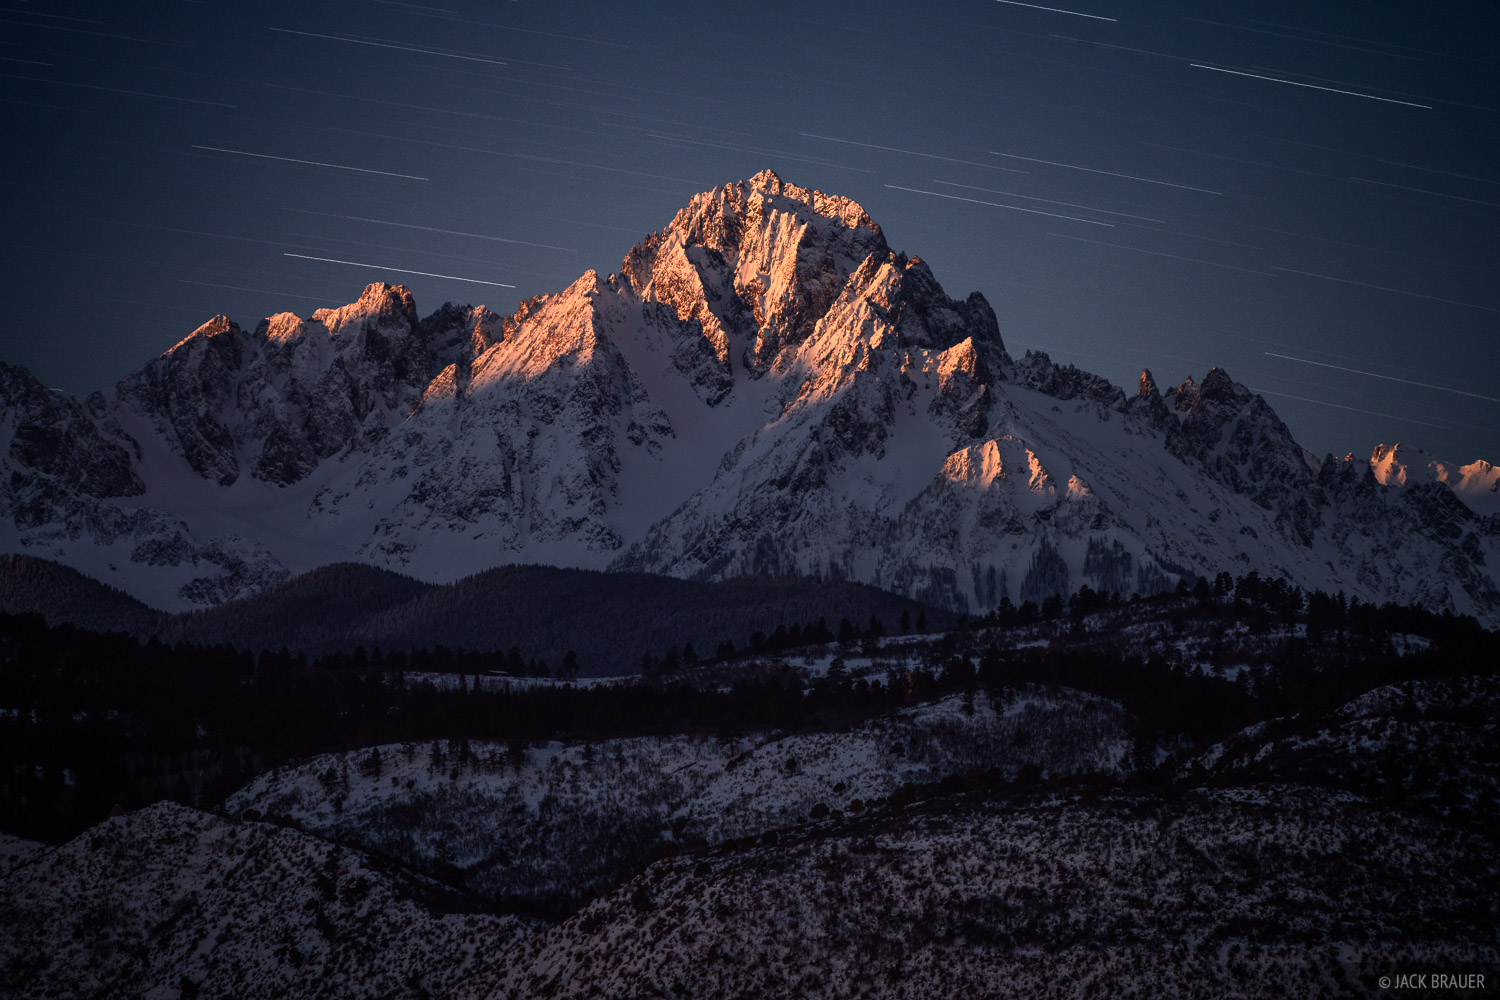 Moonrise light illuminates the summit of Mount Sneffels (14,156 ft) during a 6-minute long exposure on a cold January night.